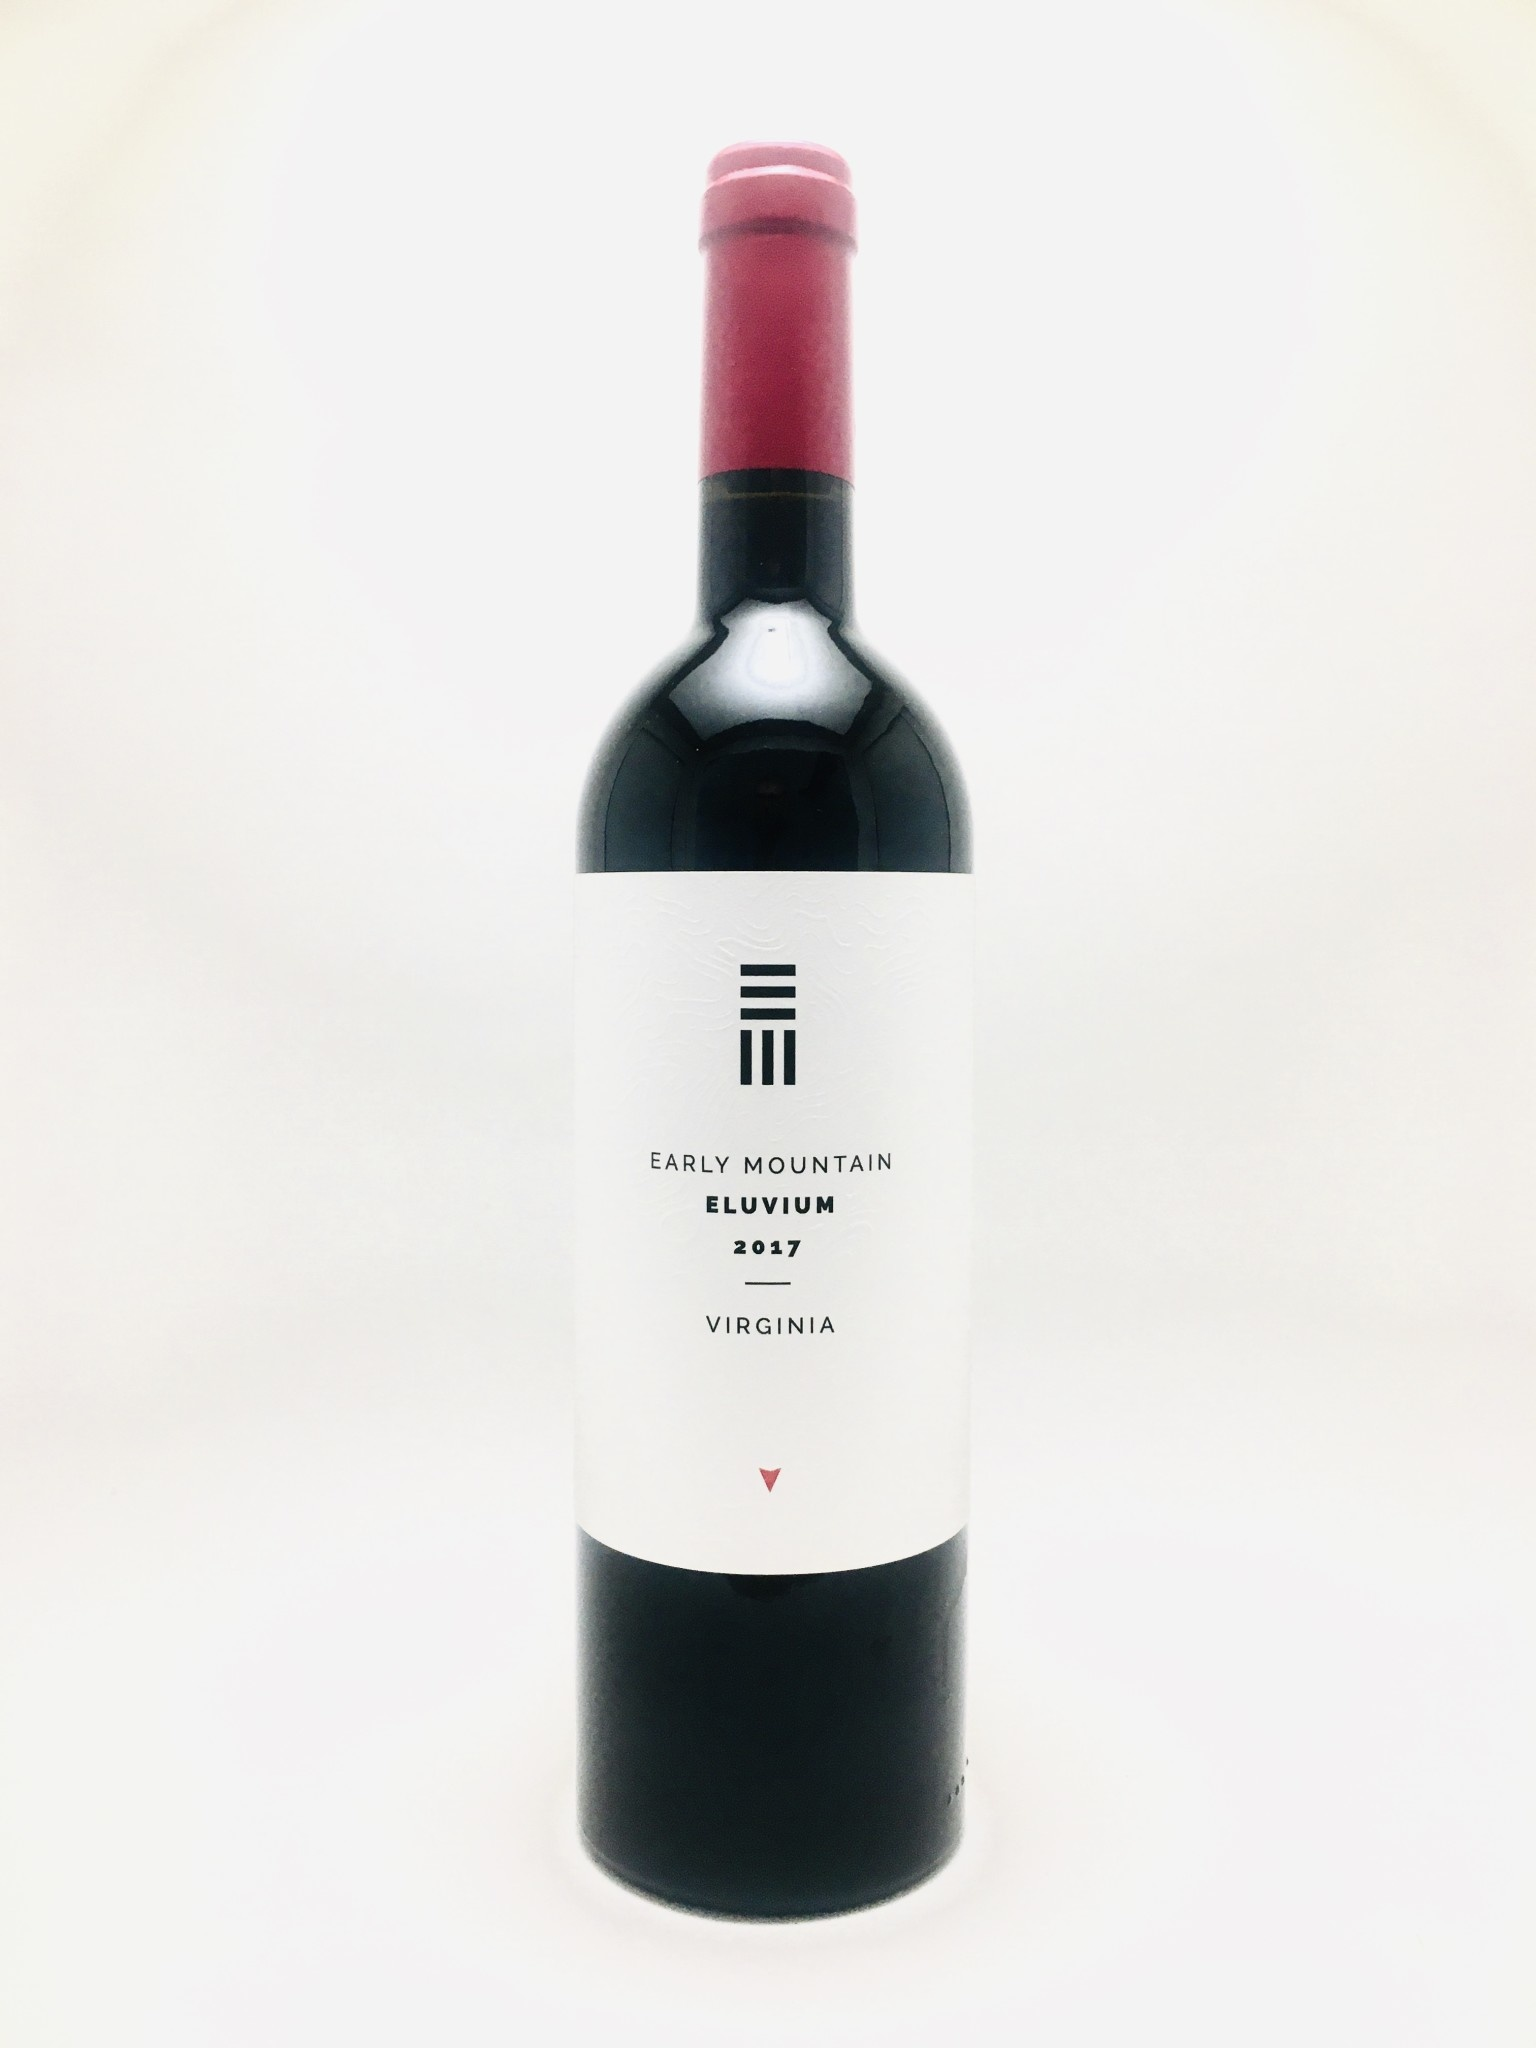 Early Mountain Eluvium Red Blend Virginia 2017